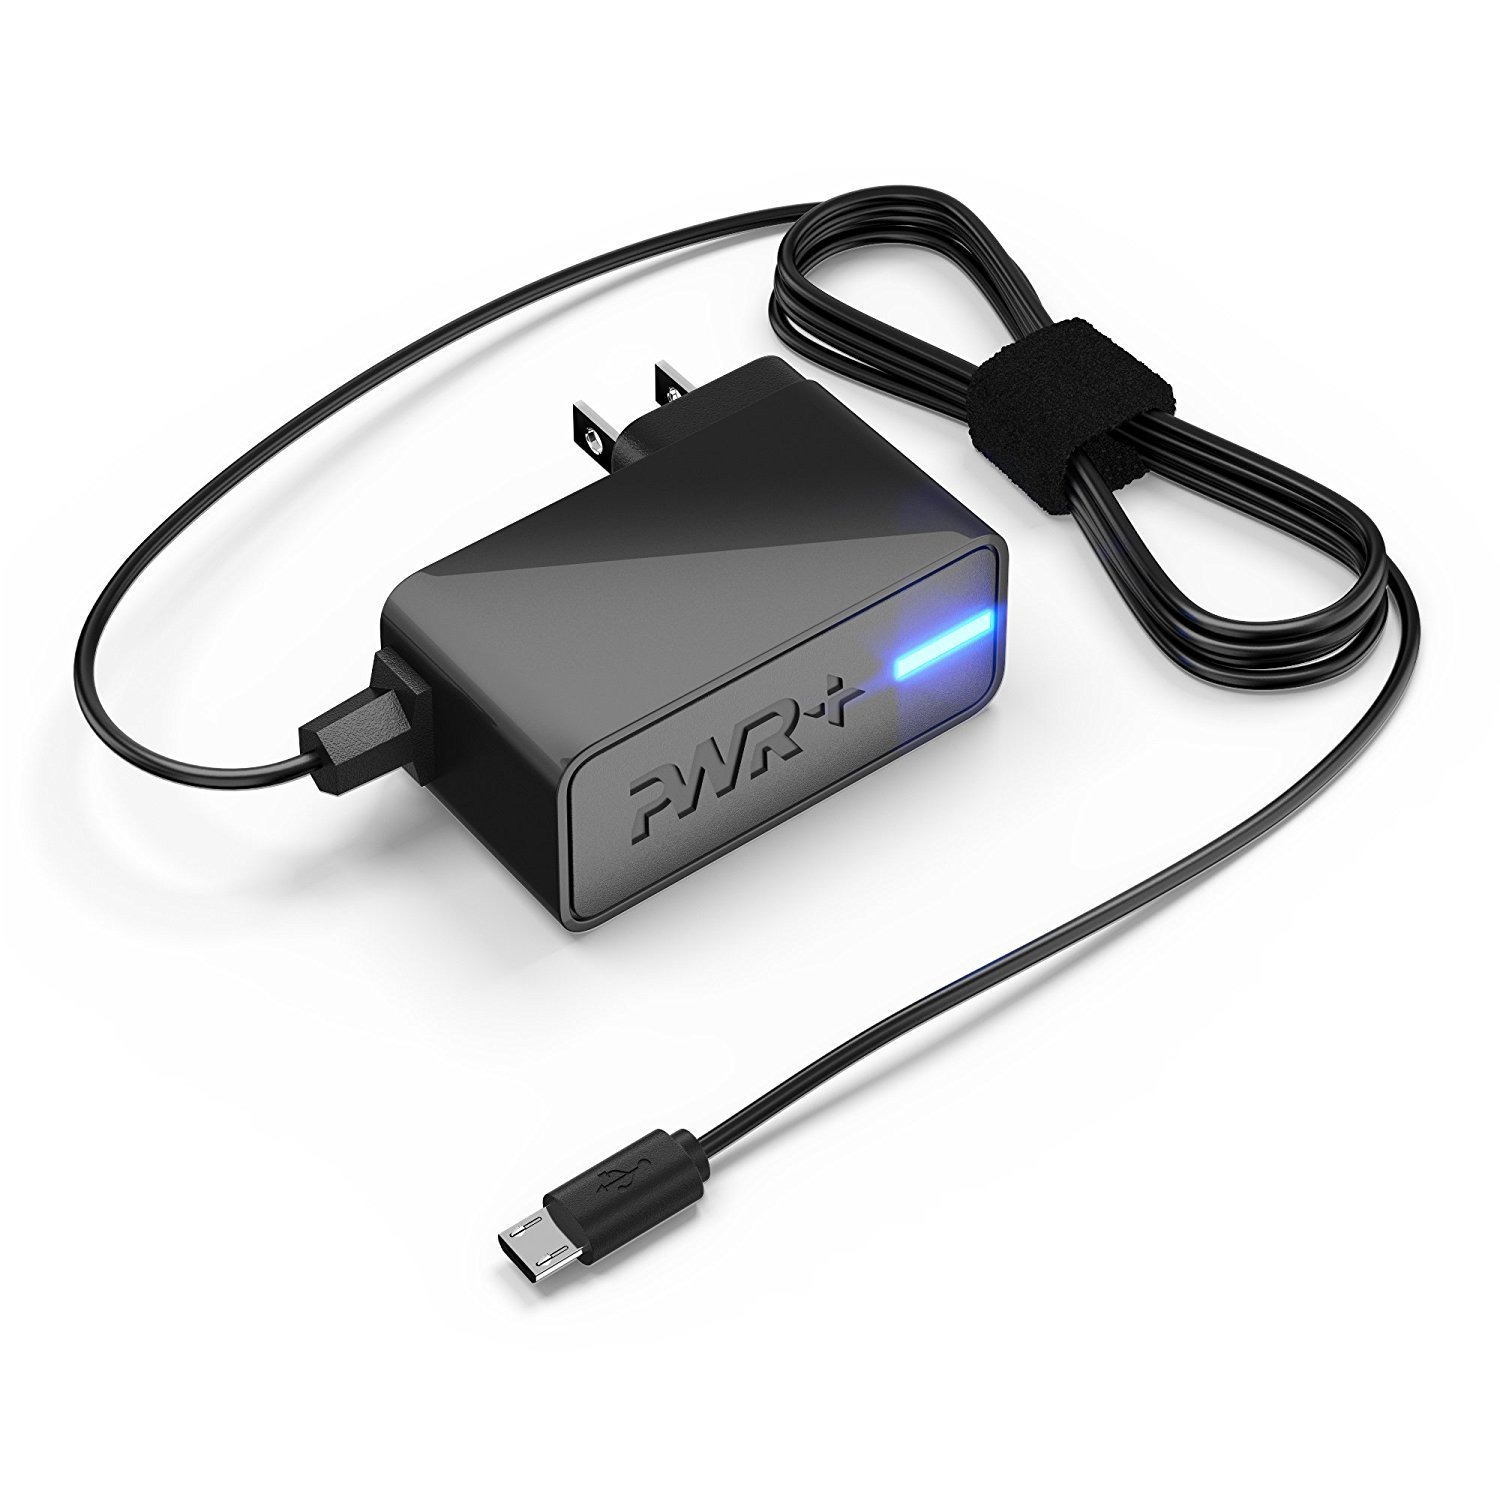 Pwr+ 10W Quick Charger for Tablet PCs EXTRA LONG 6.7 Ft: [UL Listed] Safety, Universal Compatibility Nextbook, Visual Land, DigiLand, Insignia, Dragon Touch, Ematic Funtab3, LeapFrog Epic, Huawei MediaPad M3 8; M3 Lite 8; M3 Lite 10; T1 T3 7.0 8.0 9.6, iV